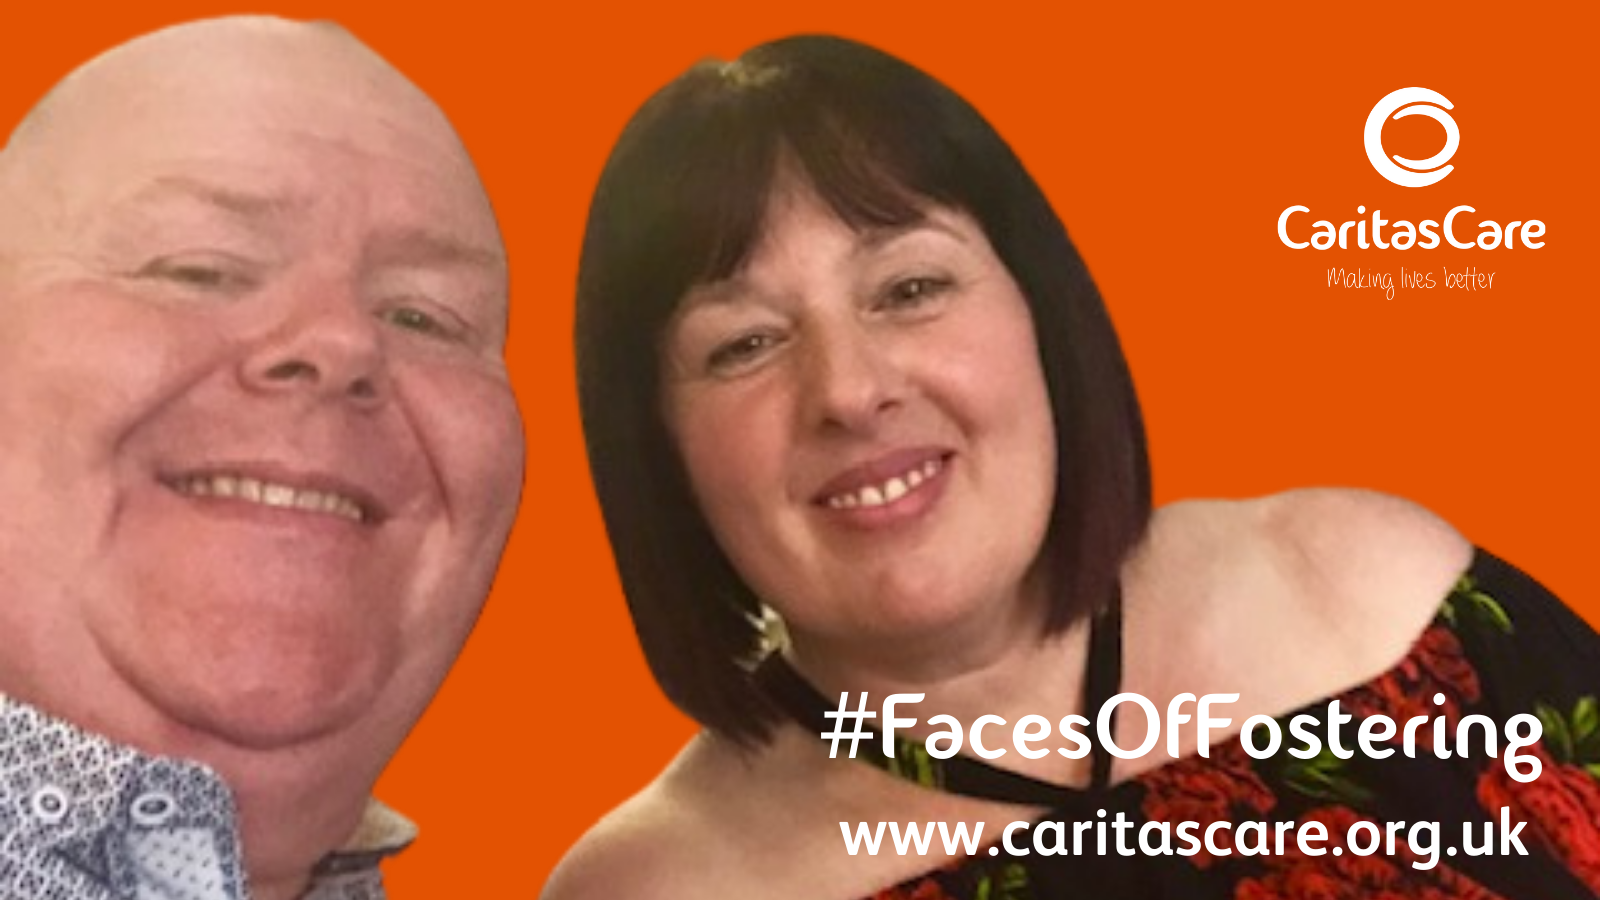 #FacesofFostering George on transferring fostering agencies…